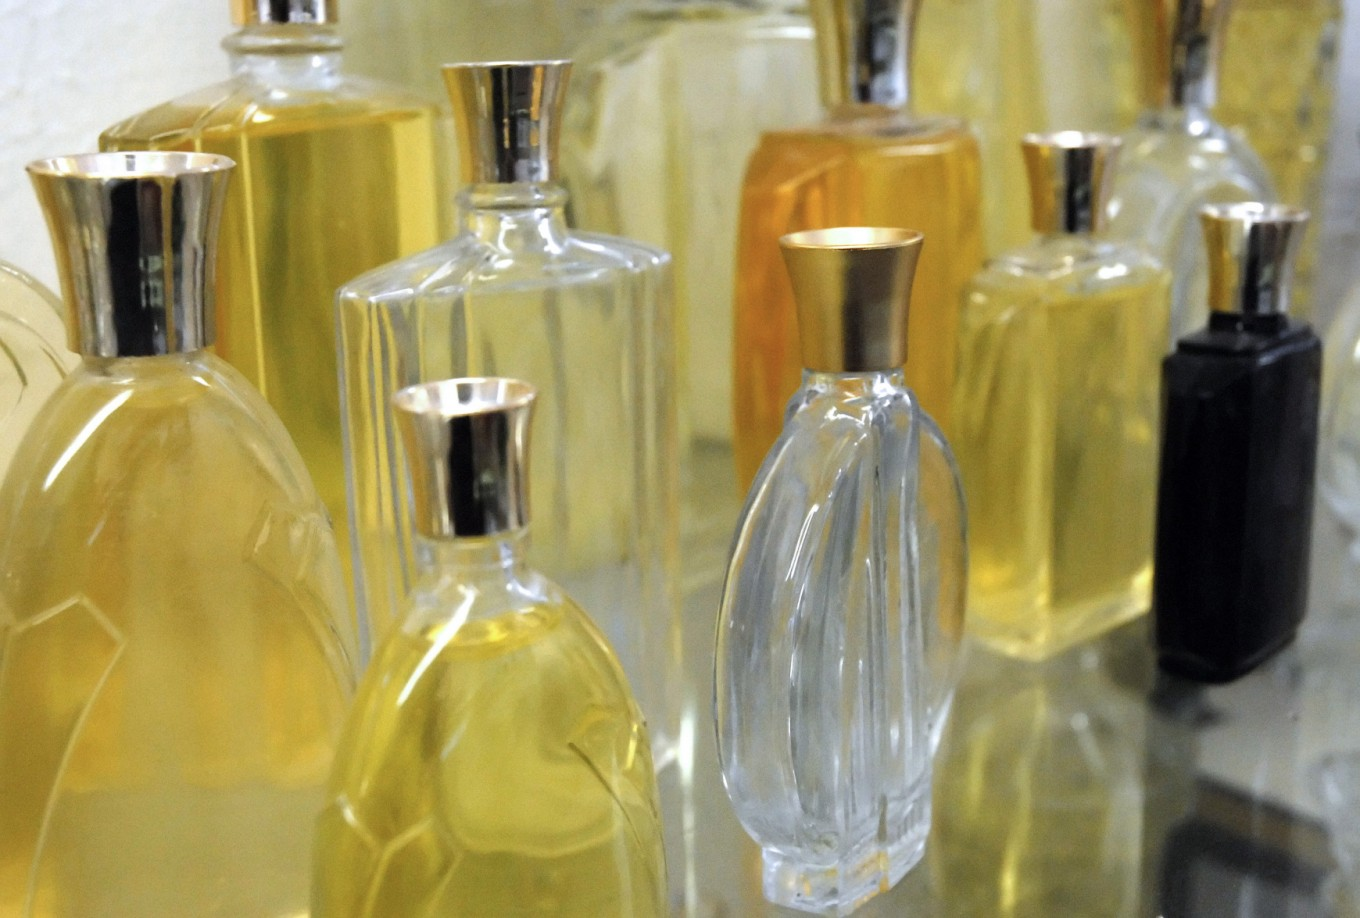 Your scented products may be hiding a dangerous secret